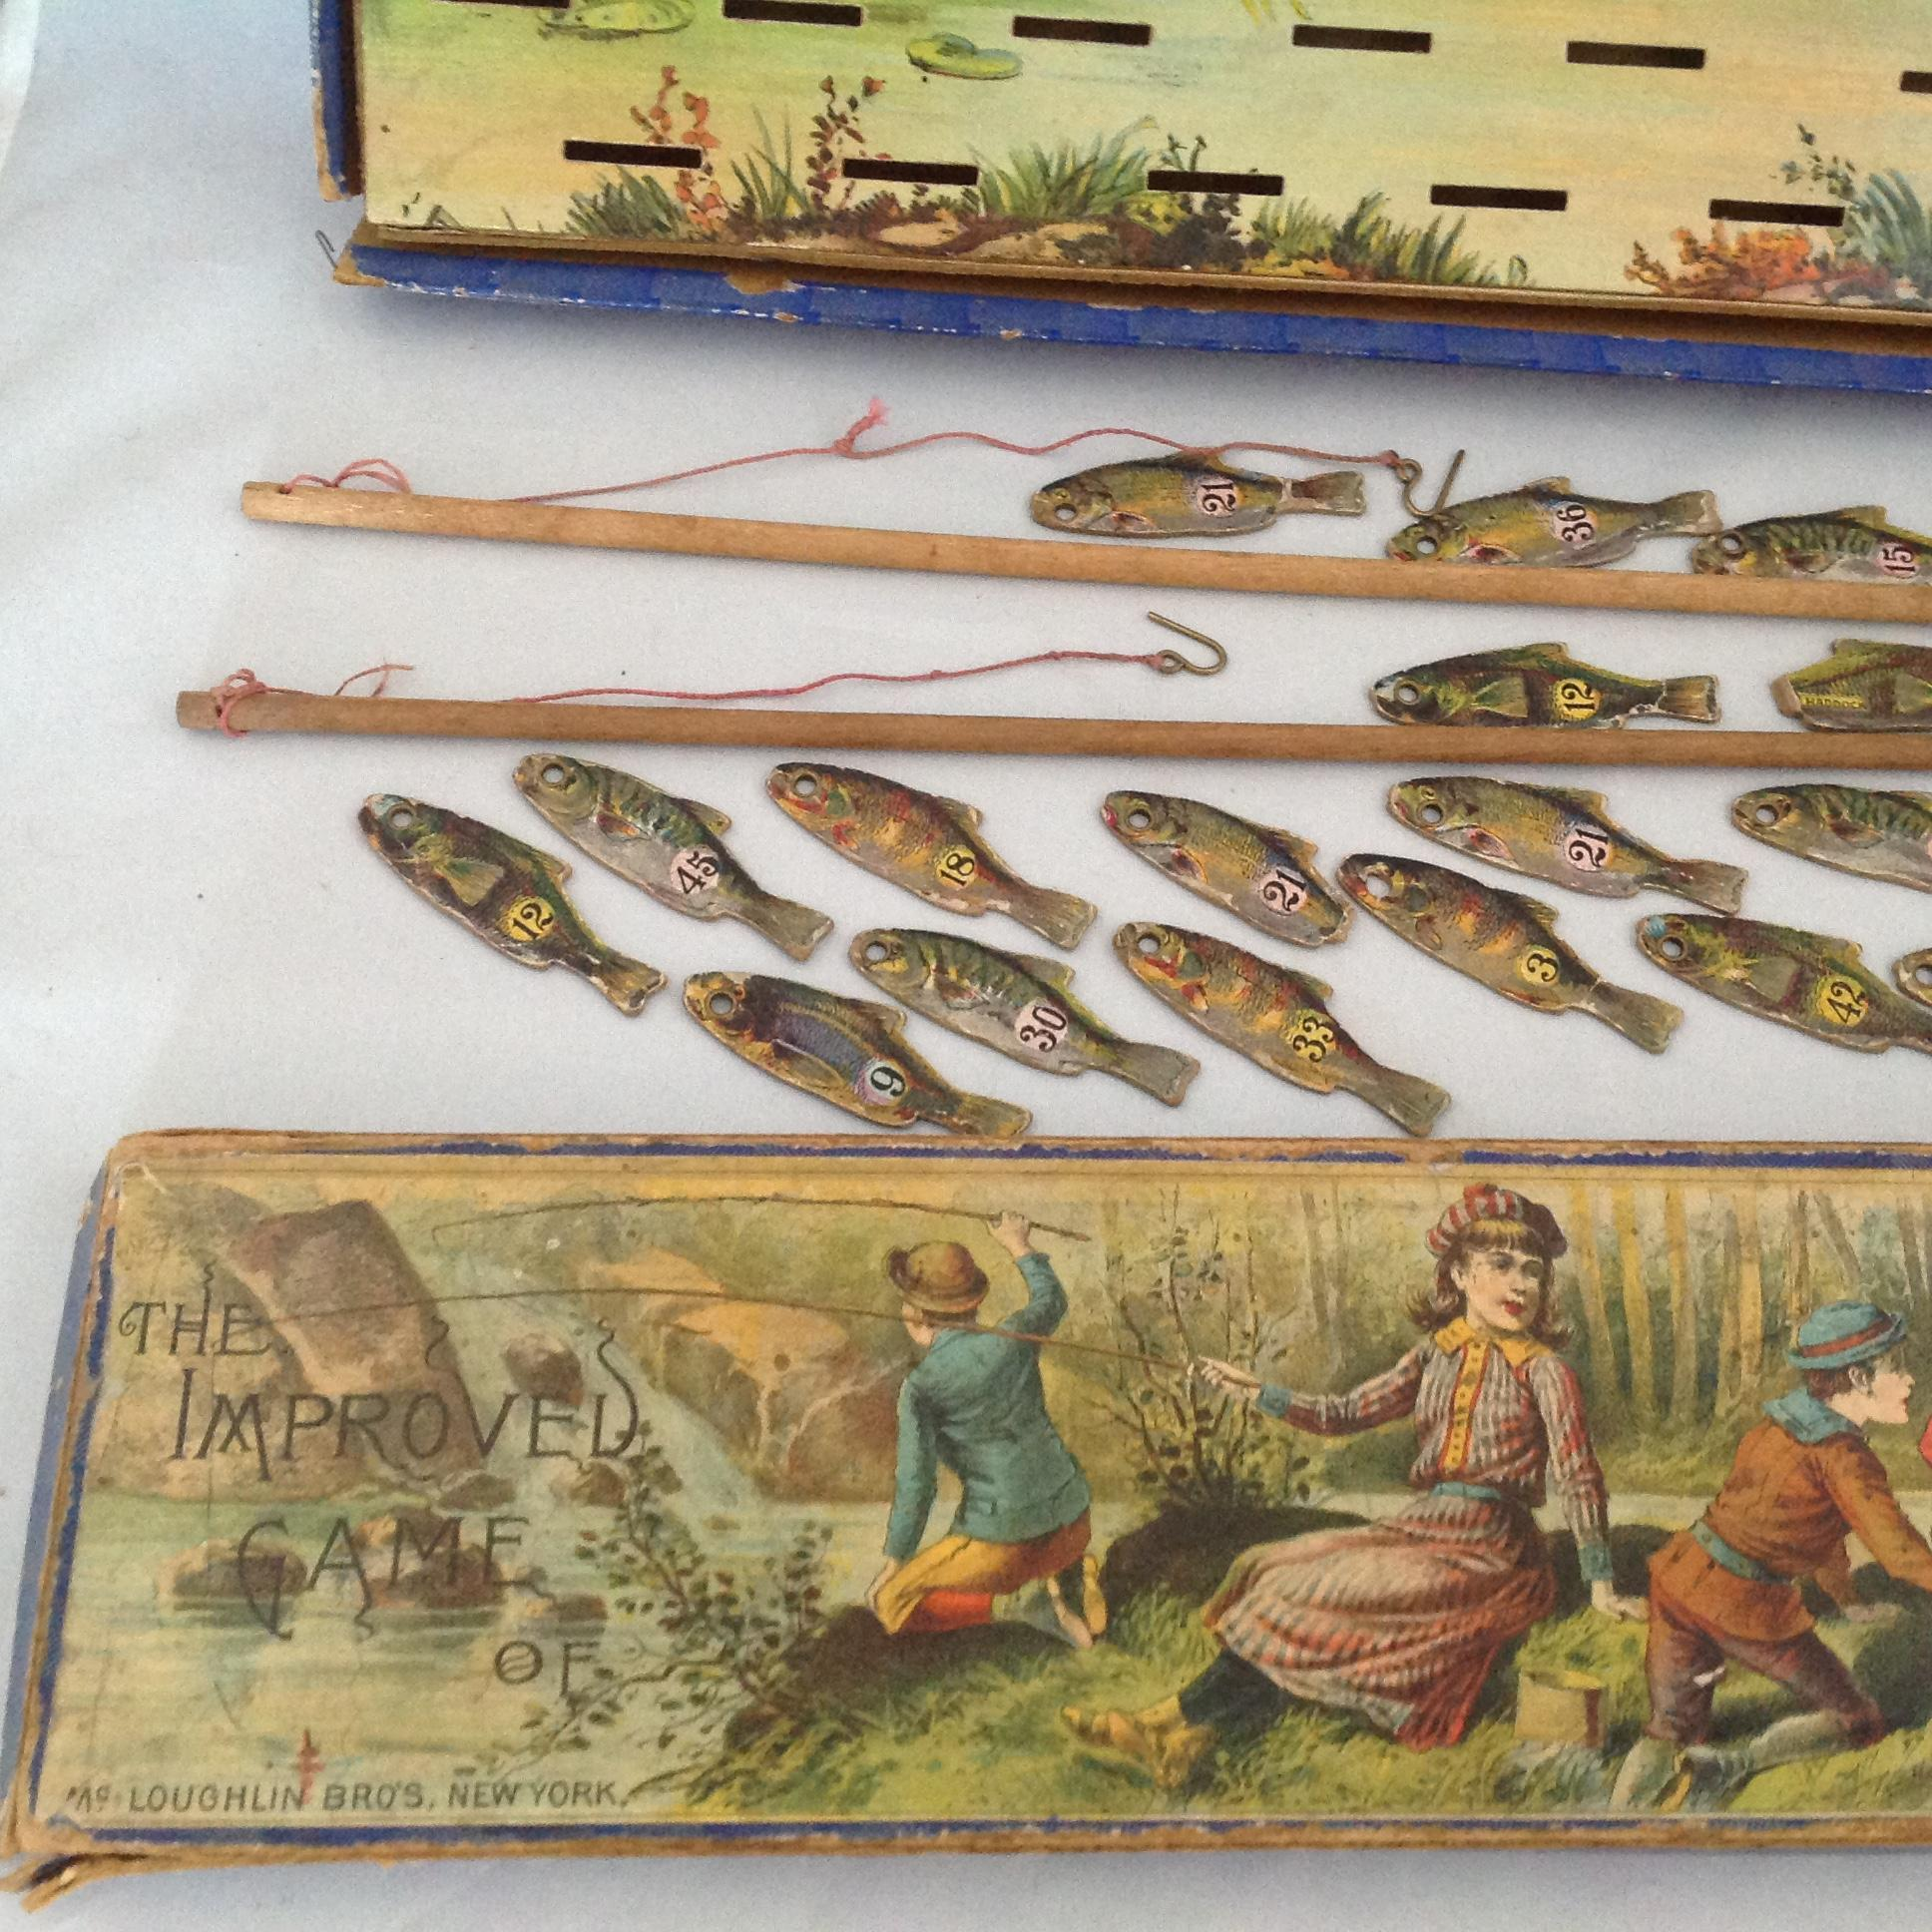 Mcloughlin bros improved fish pond game dated 1890 from for Fish pond game